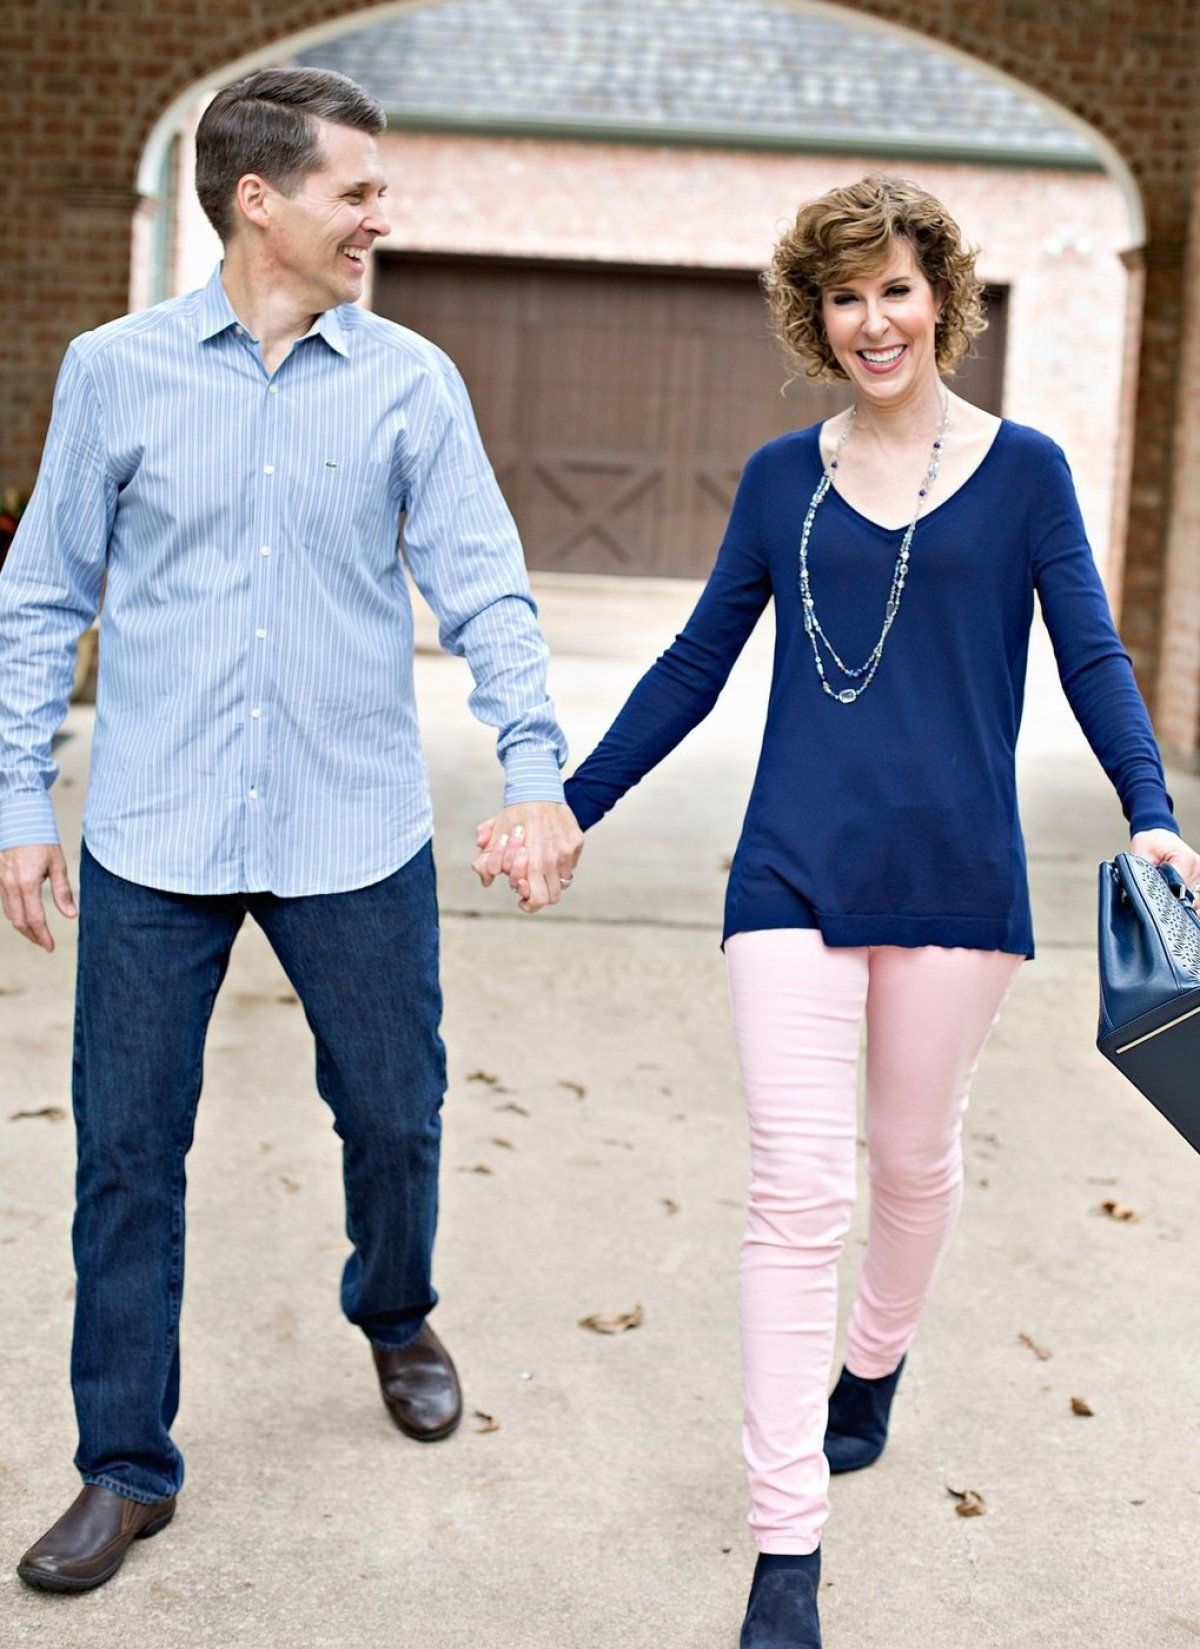 eight great dates for empty nesters fun date ideas